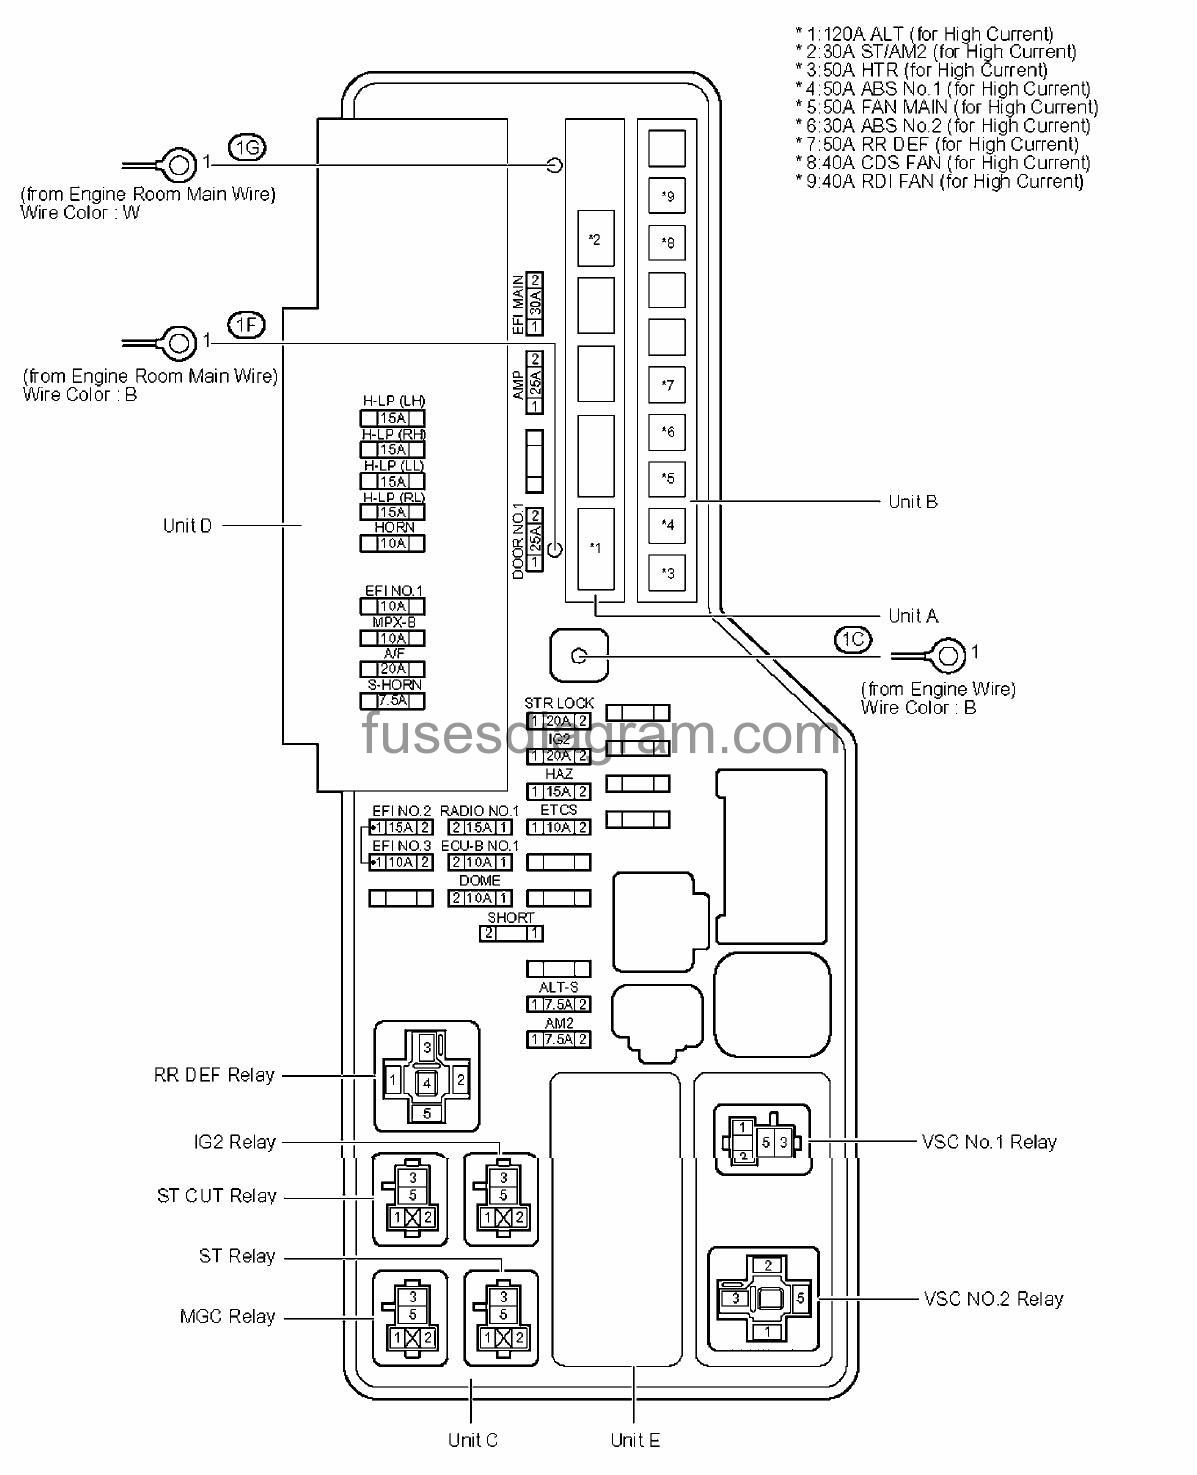 2002 Toyota Avalon Fuse Box Diagram List Of Schematic Circuit 1987 Celica Panel Just Wiring Data Rh Ag Skiphire Co Uk